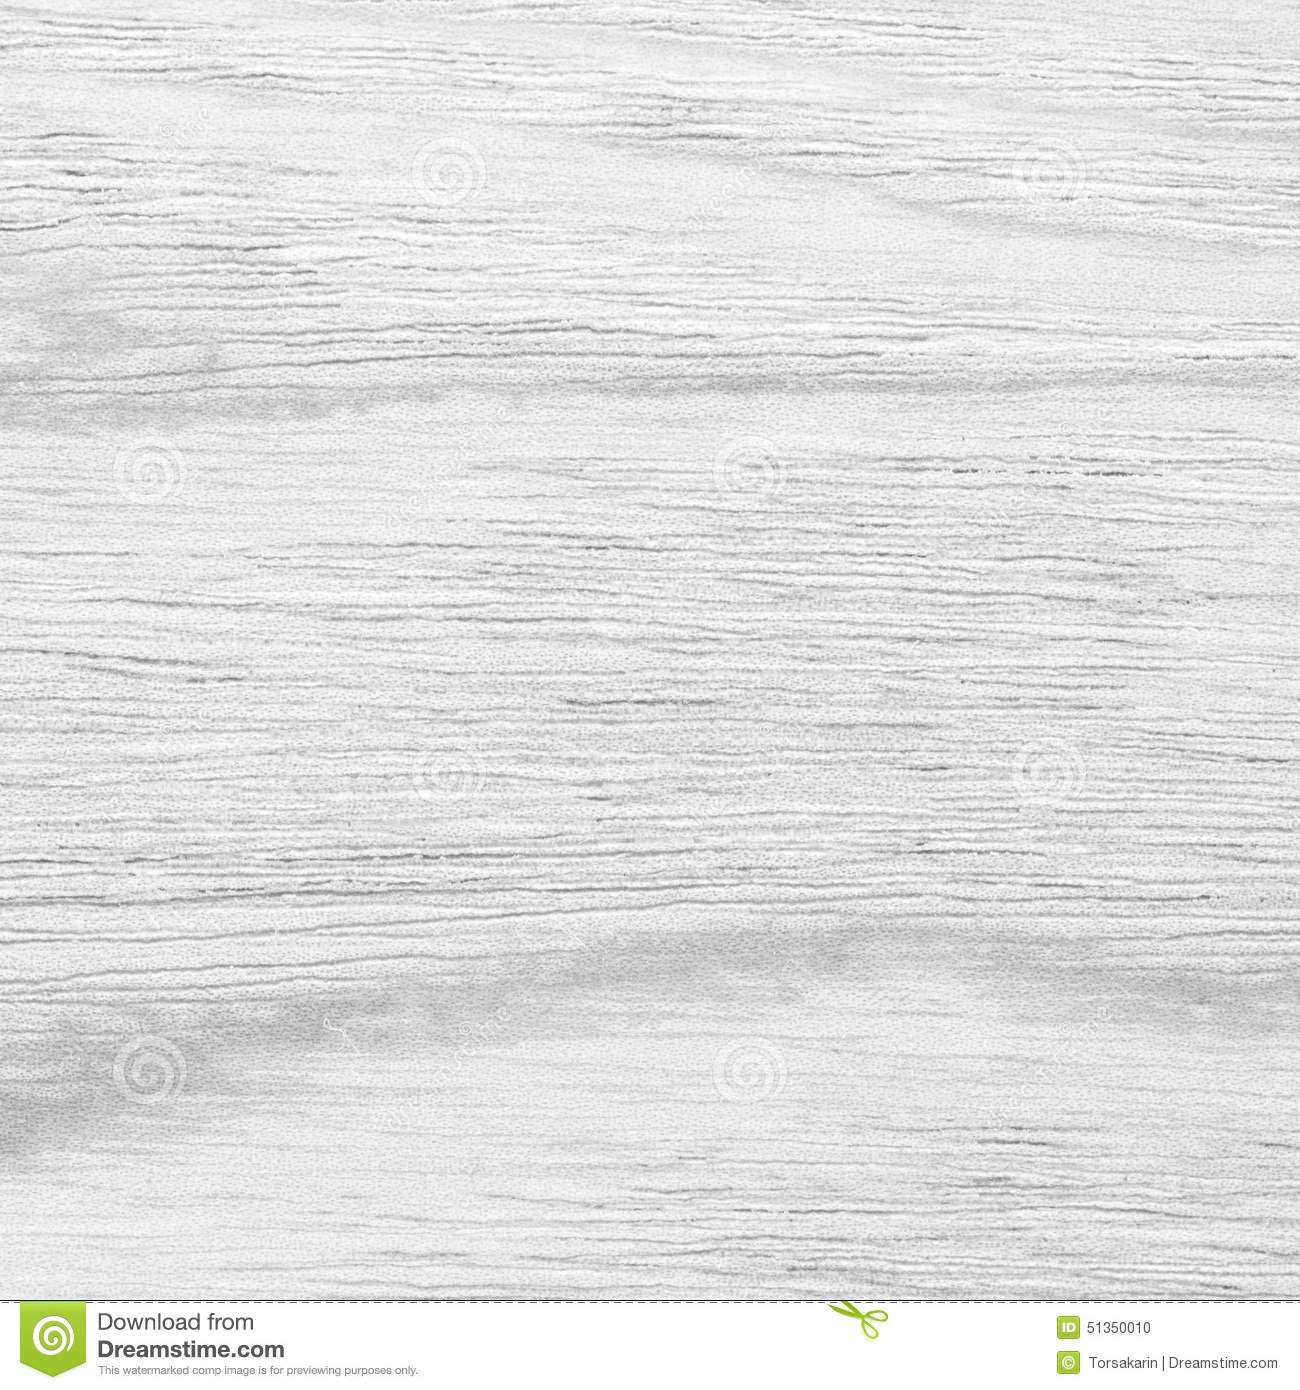 Wood Texture Stock Photo Image 51350010